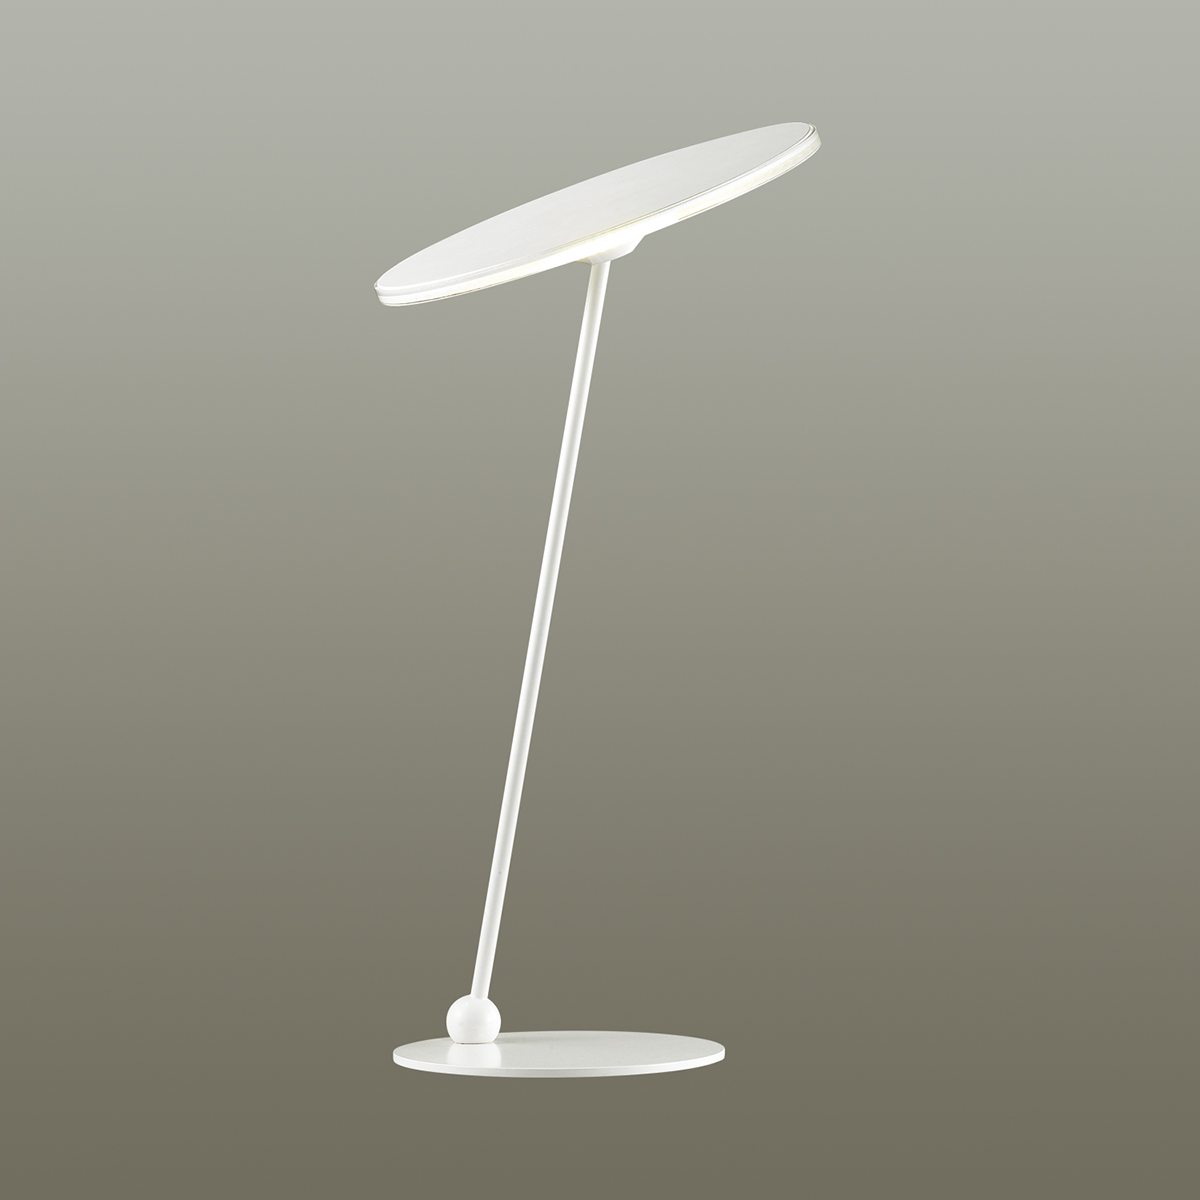 Настольная лампа ODEON LIGHT арт. 4107/12TL